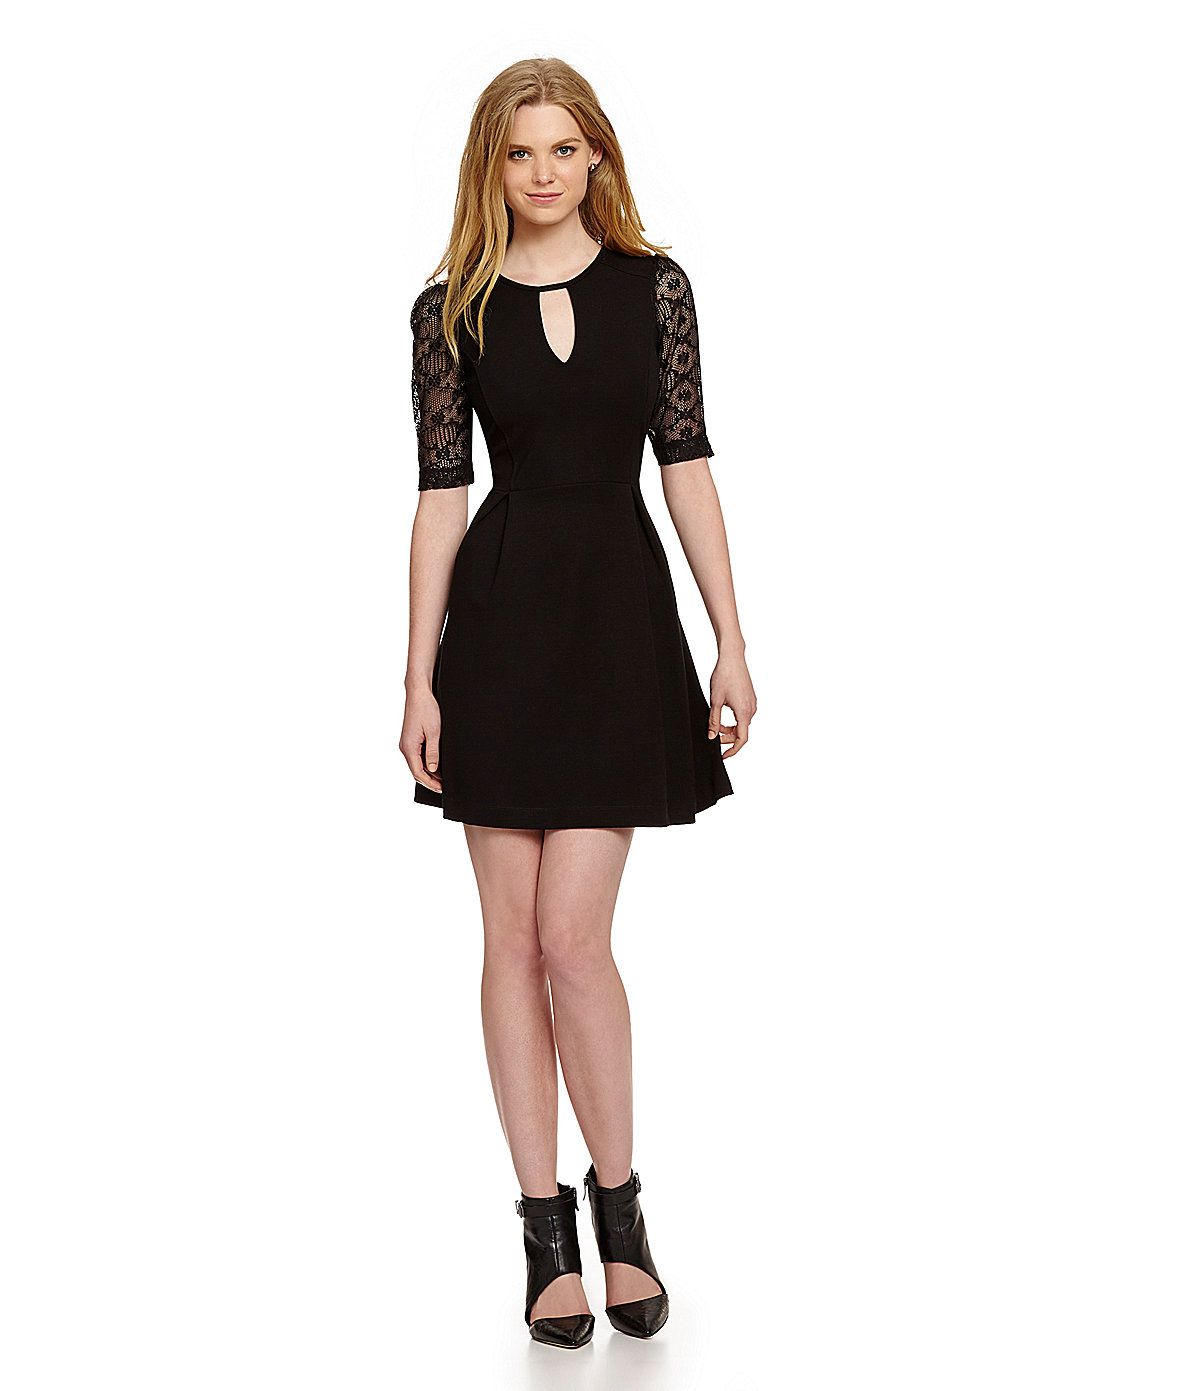 French Connection Valentine Lace Dress Dillards Formal